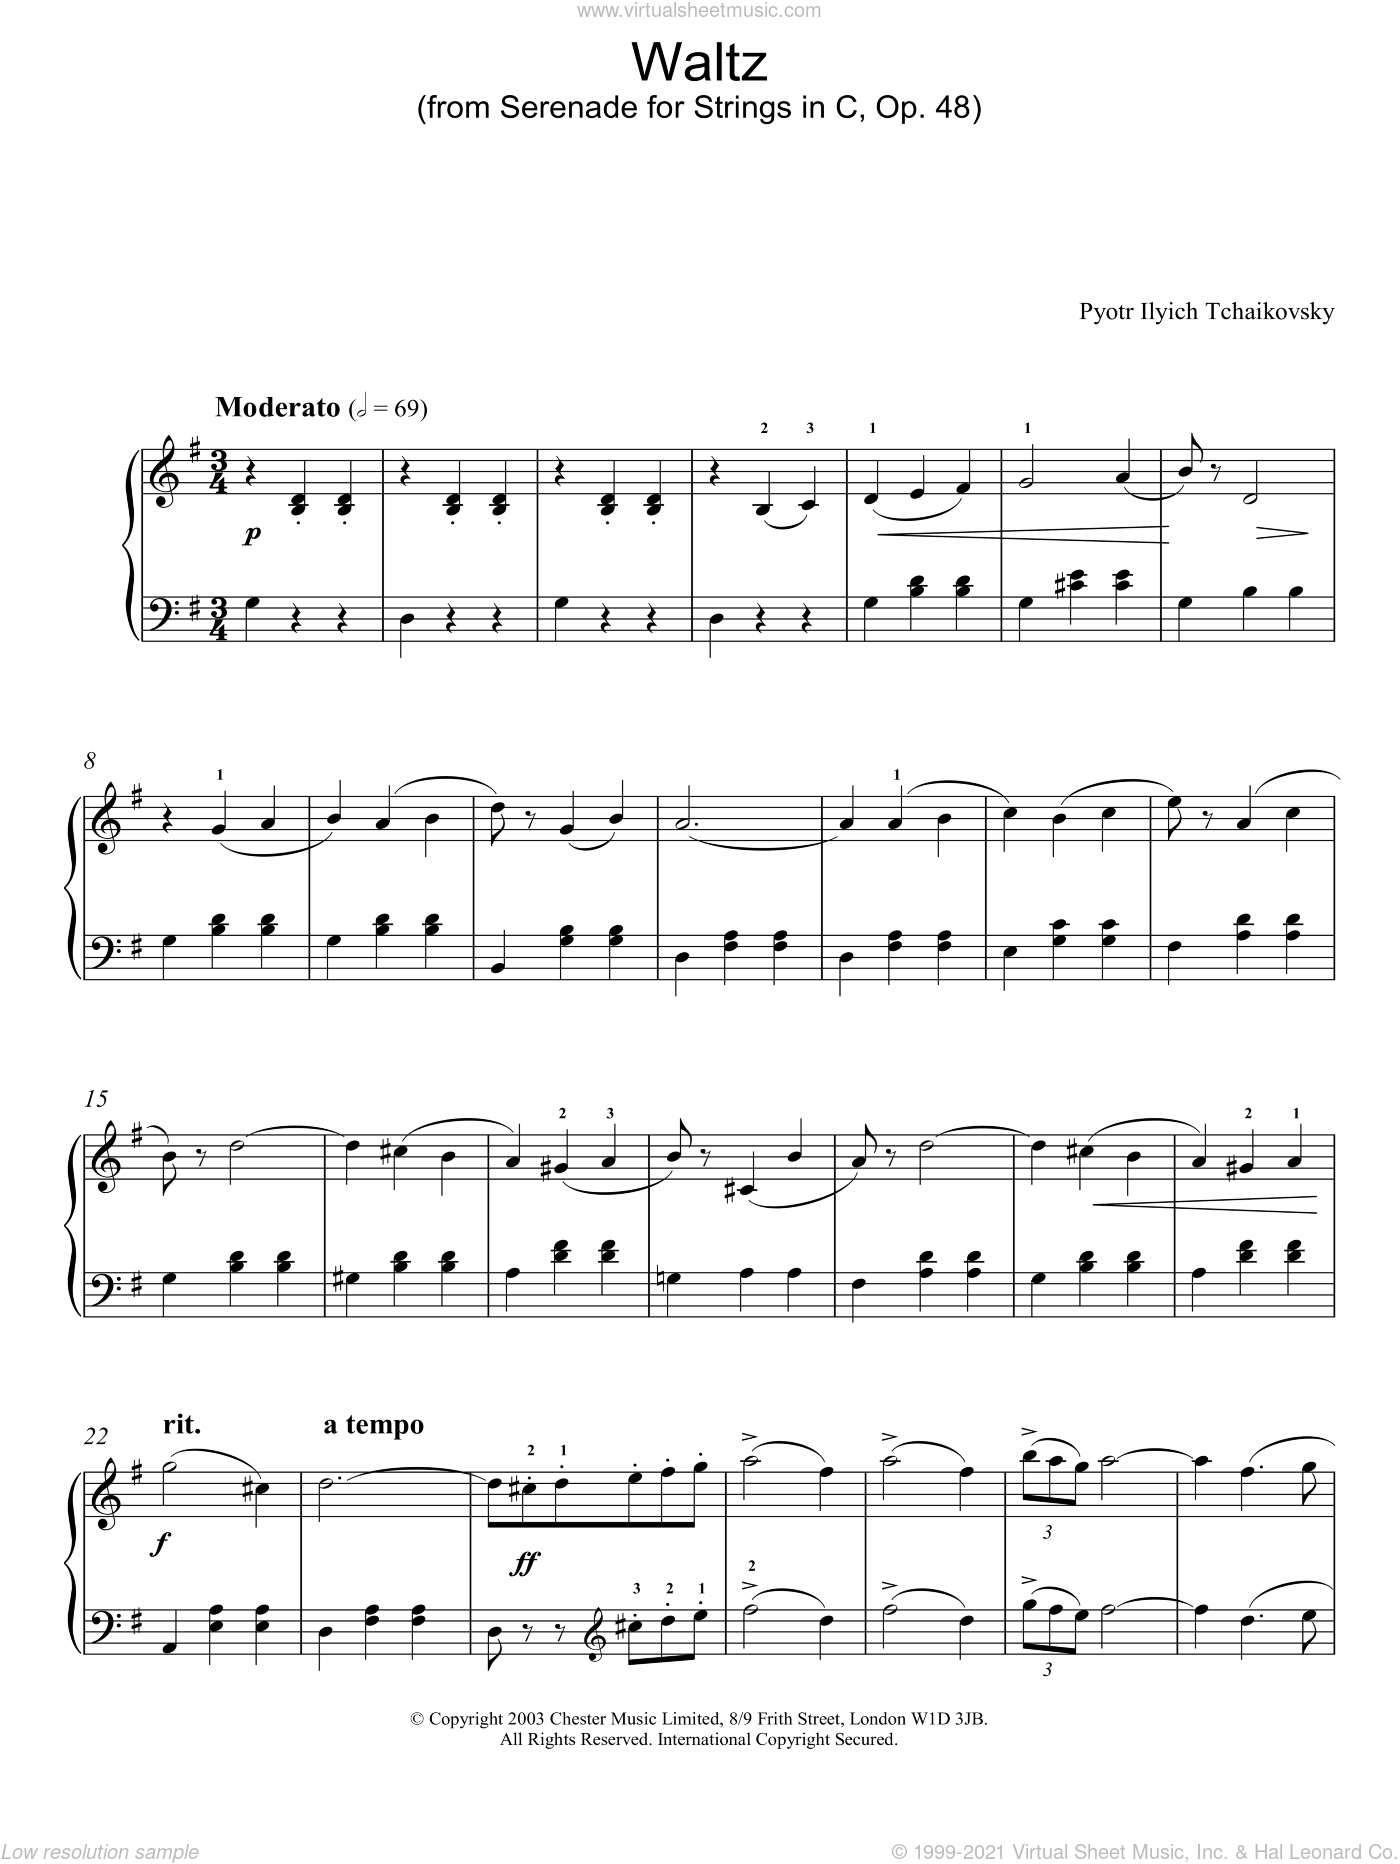 Waltz (from Serenade for Strings In C, Op. 48) sheet music for piano solo by Pyotr Ilyich Tchaikovsky